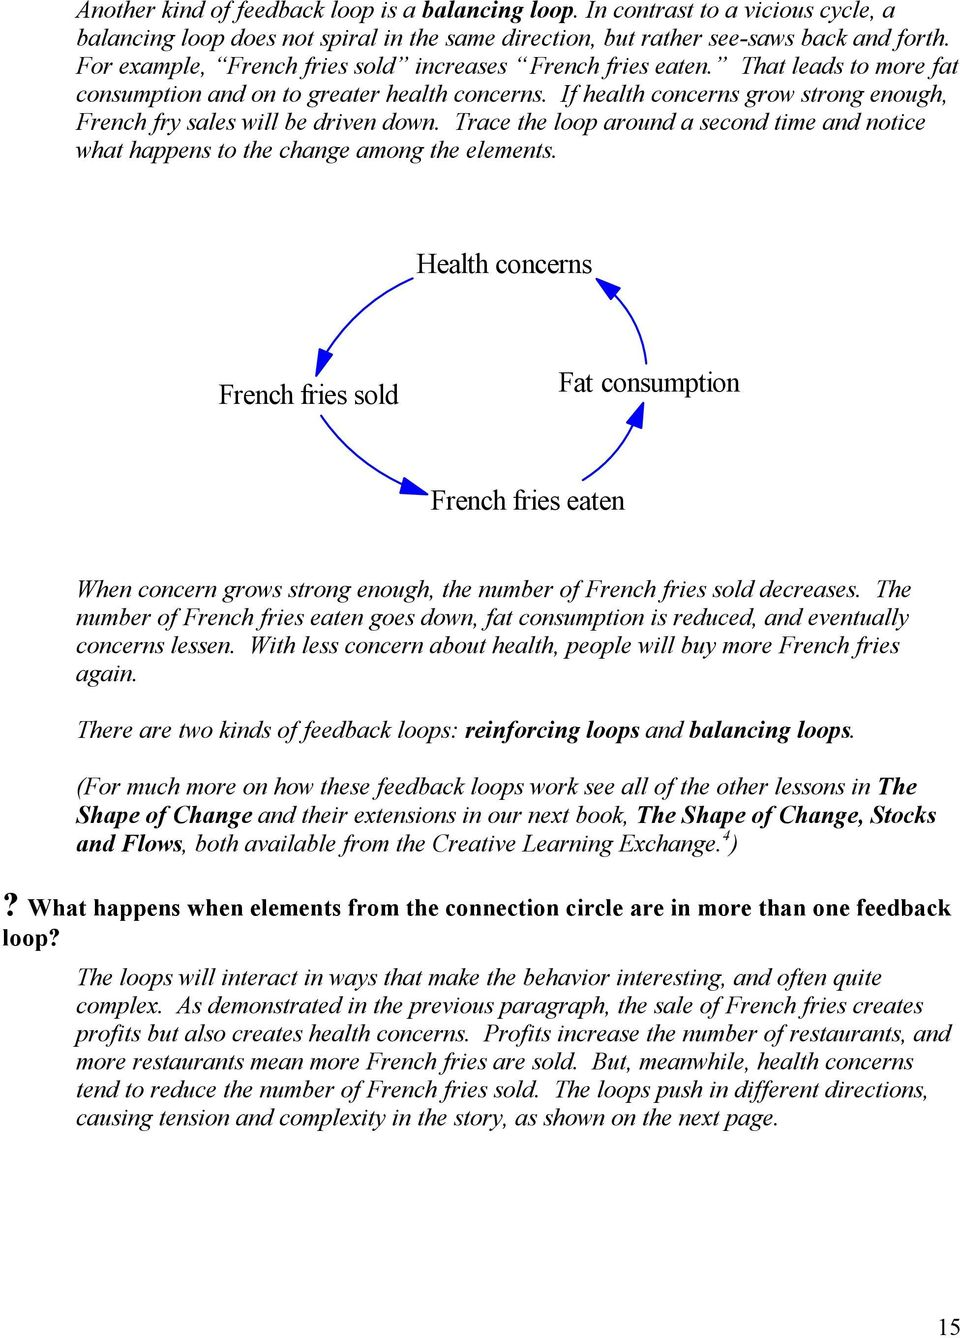 If health concerns grow strong enough, French fry sales will be driven down. Trace the loop around a second time and notice what happens to the change among the elements.